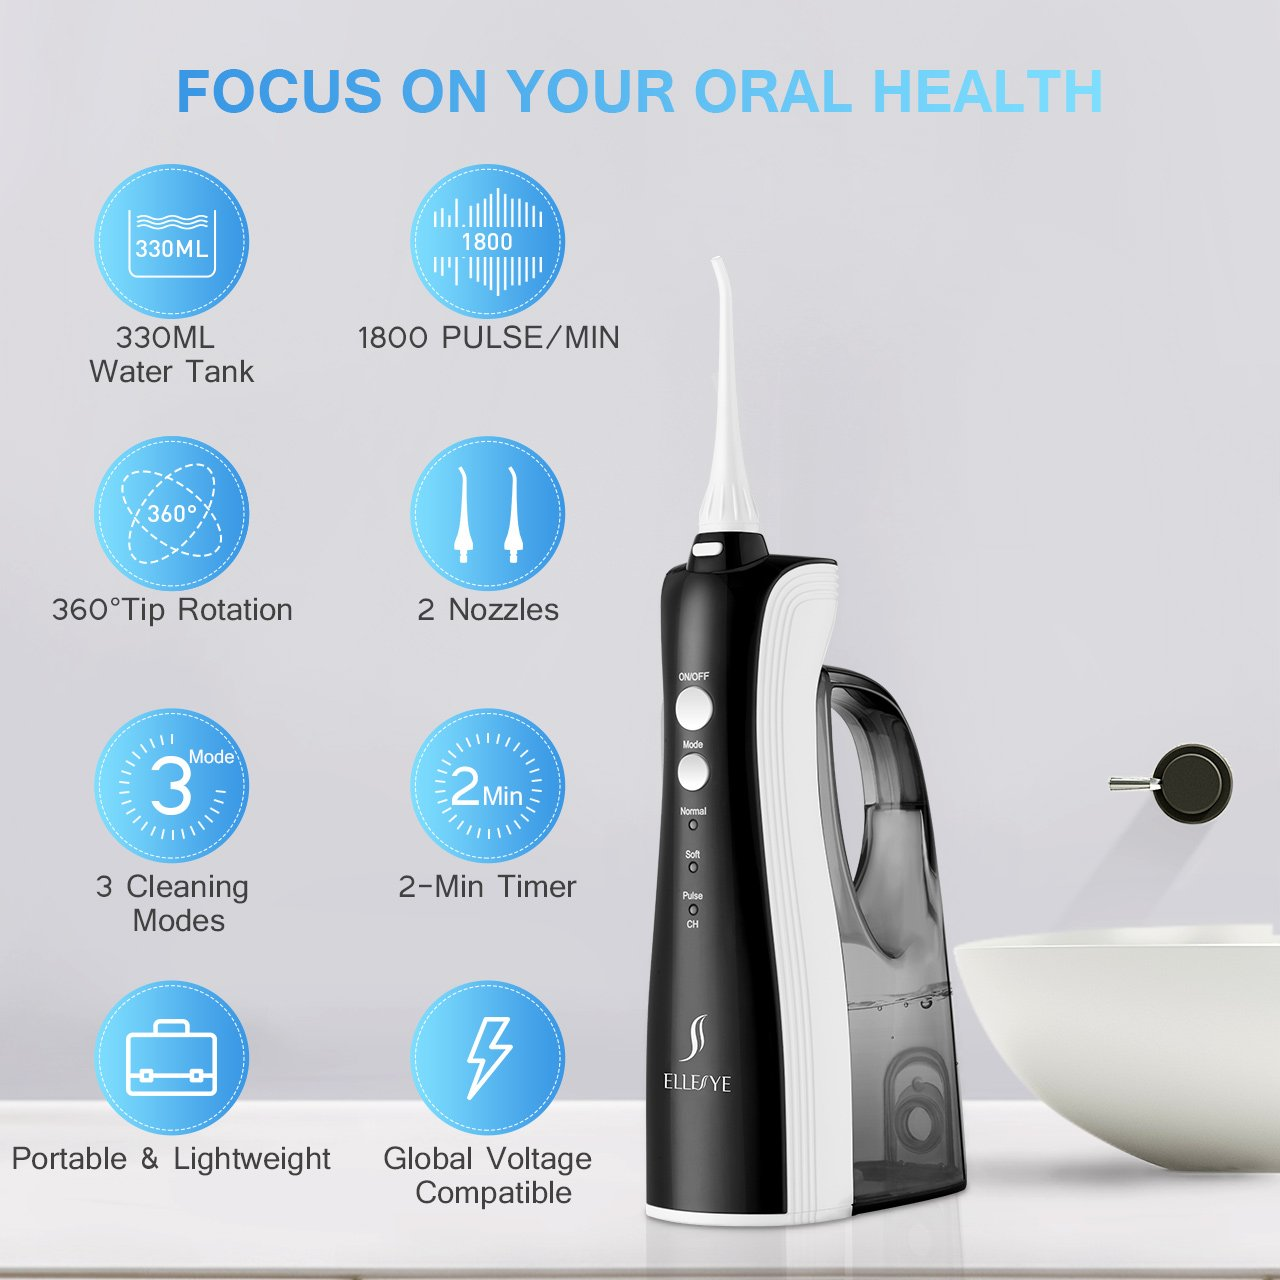 [UPGRADED] 330ML Cordless Water Flosser Teeth Cleaner, ELLESYE High Pulse Rechargeable Portable Oral Irrigator for Travel & Office Use, IPX7 Waterproof Dental Flosser for Shower with 2 Tips for Family by ELLESYE (Image #3)